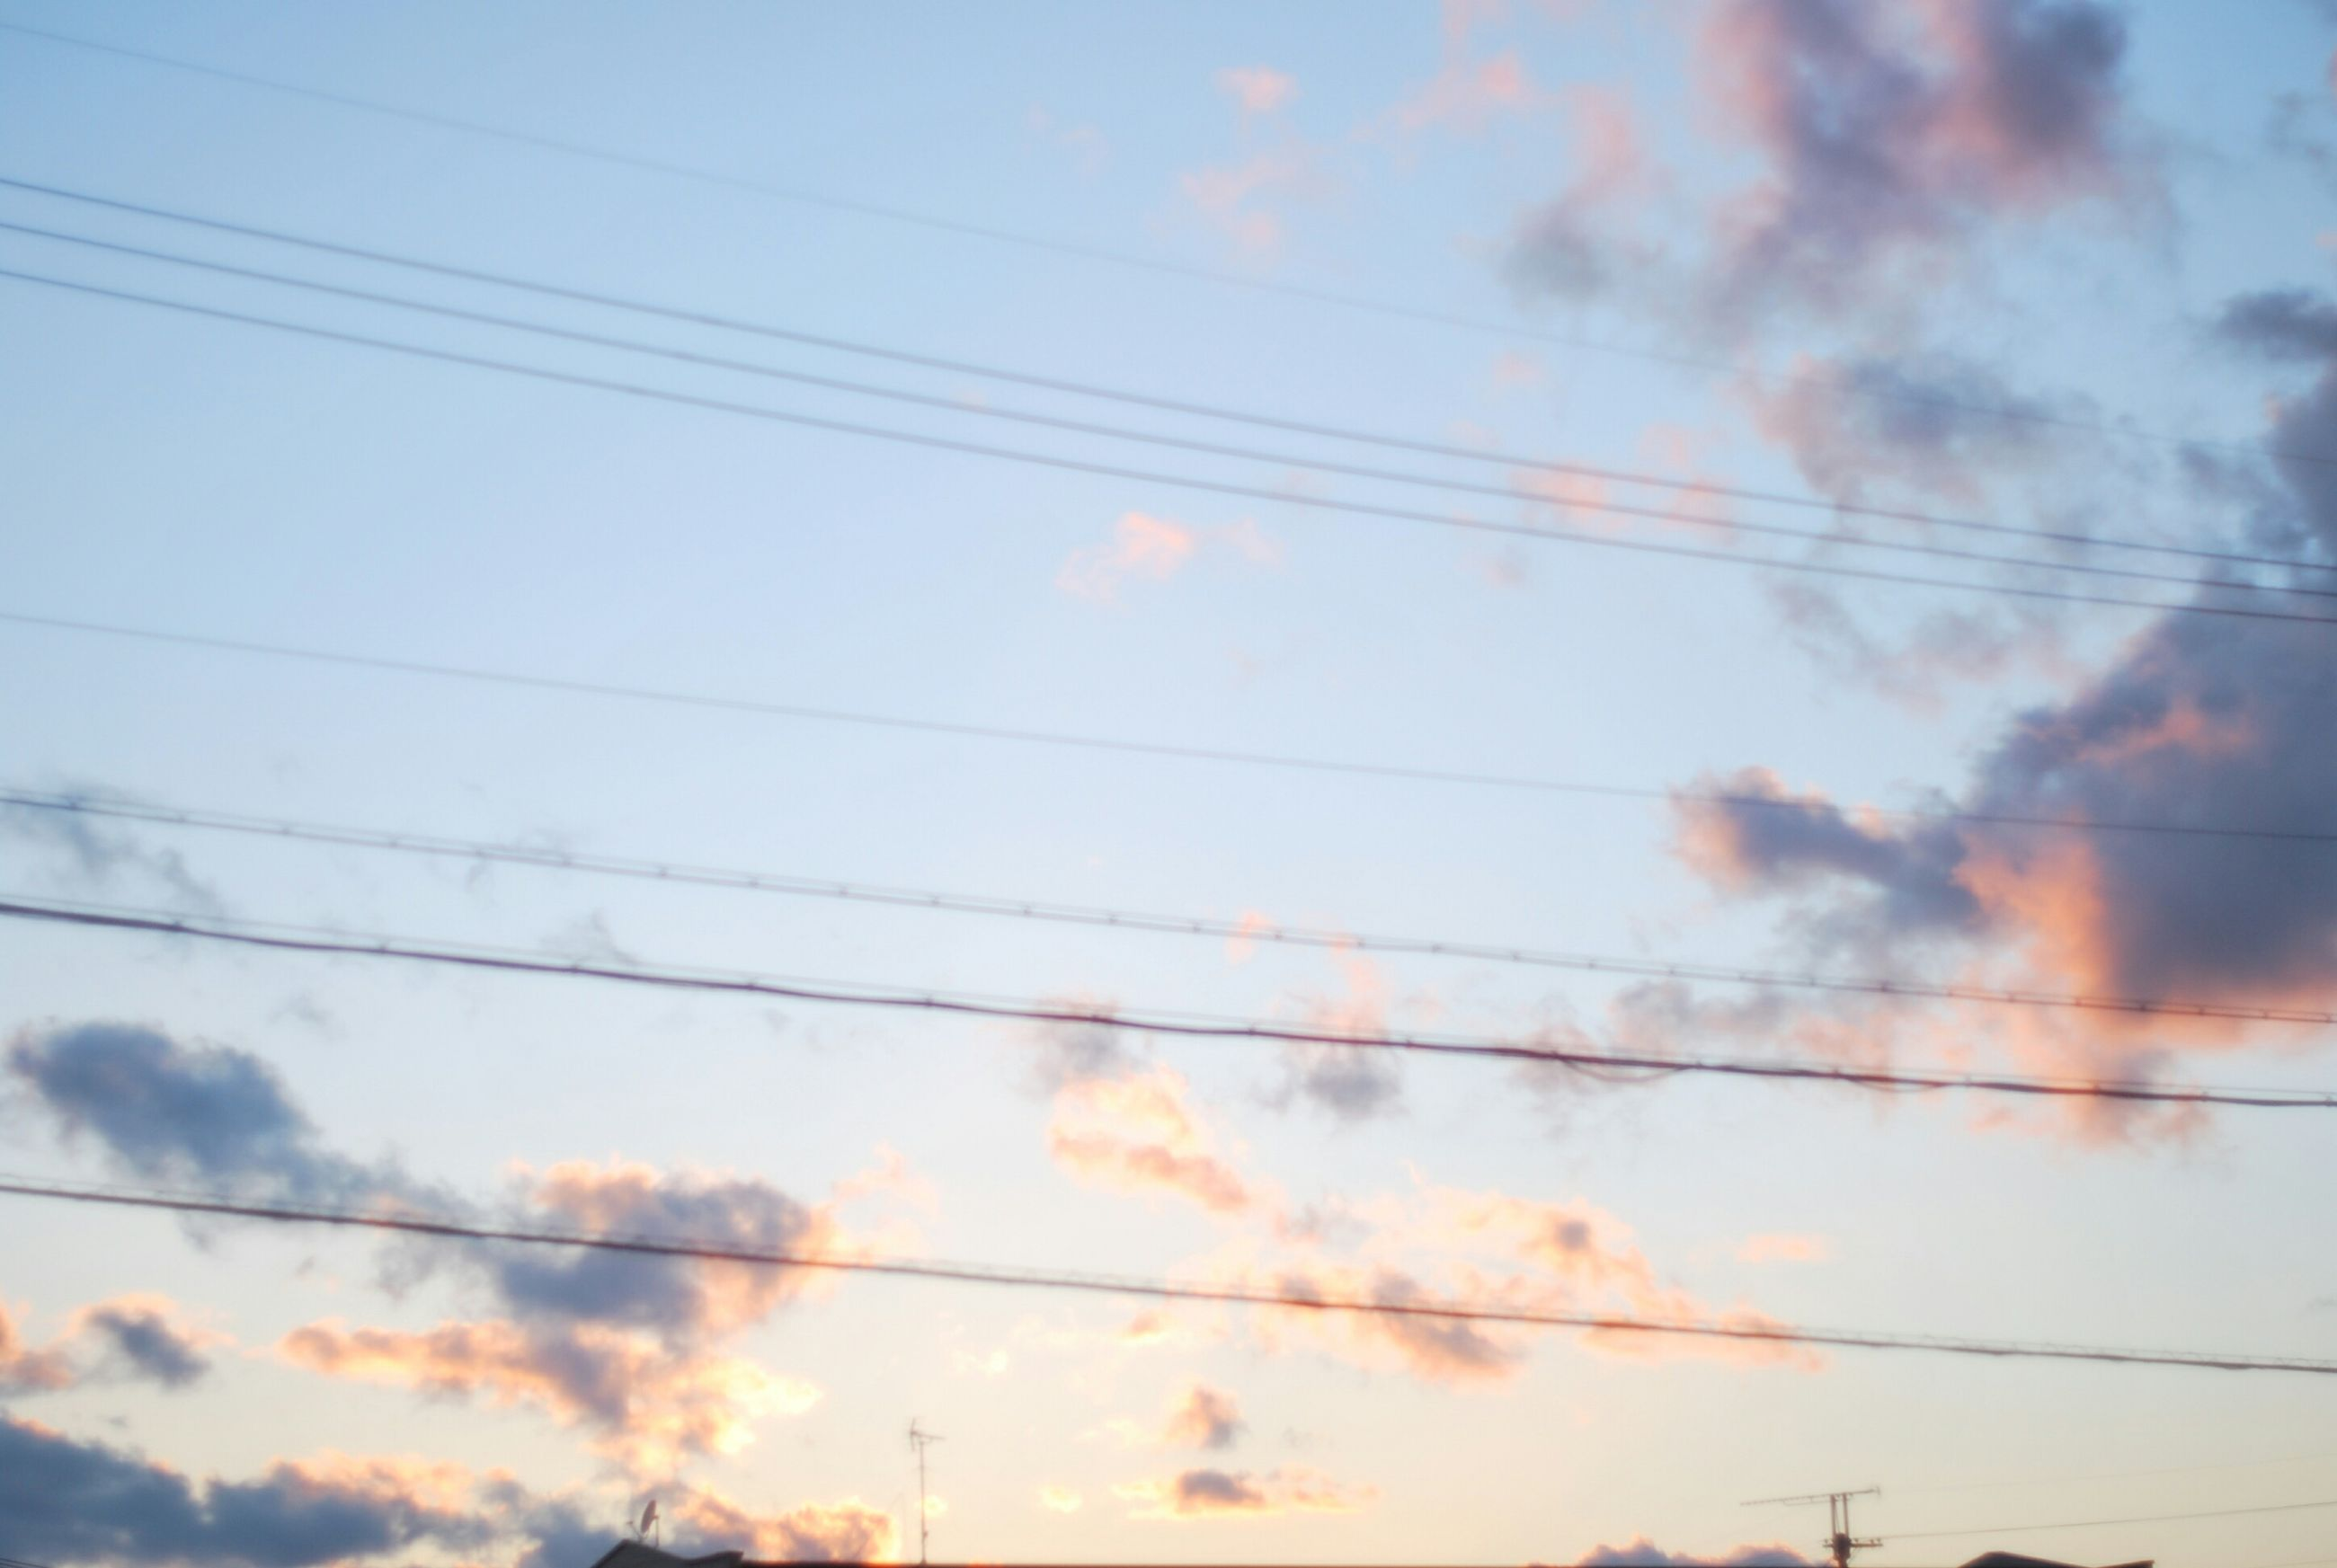 power line, sky, cable, cloud - sky, electricity pylon, power supply, electricity, low angle view, cloudy, connection, sunset, tranquility, cloud, scenics, beauty in nature, tranquil scene, power cable, nature, fuel and power generation, silhouette